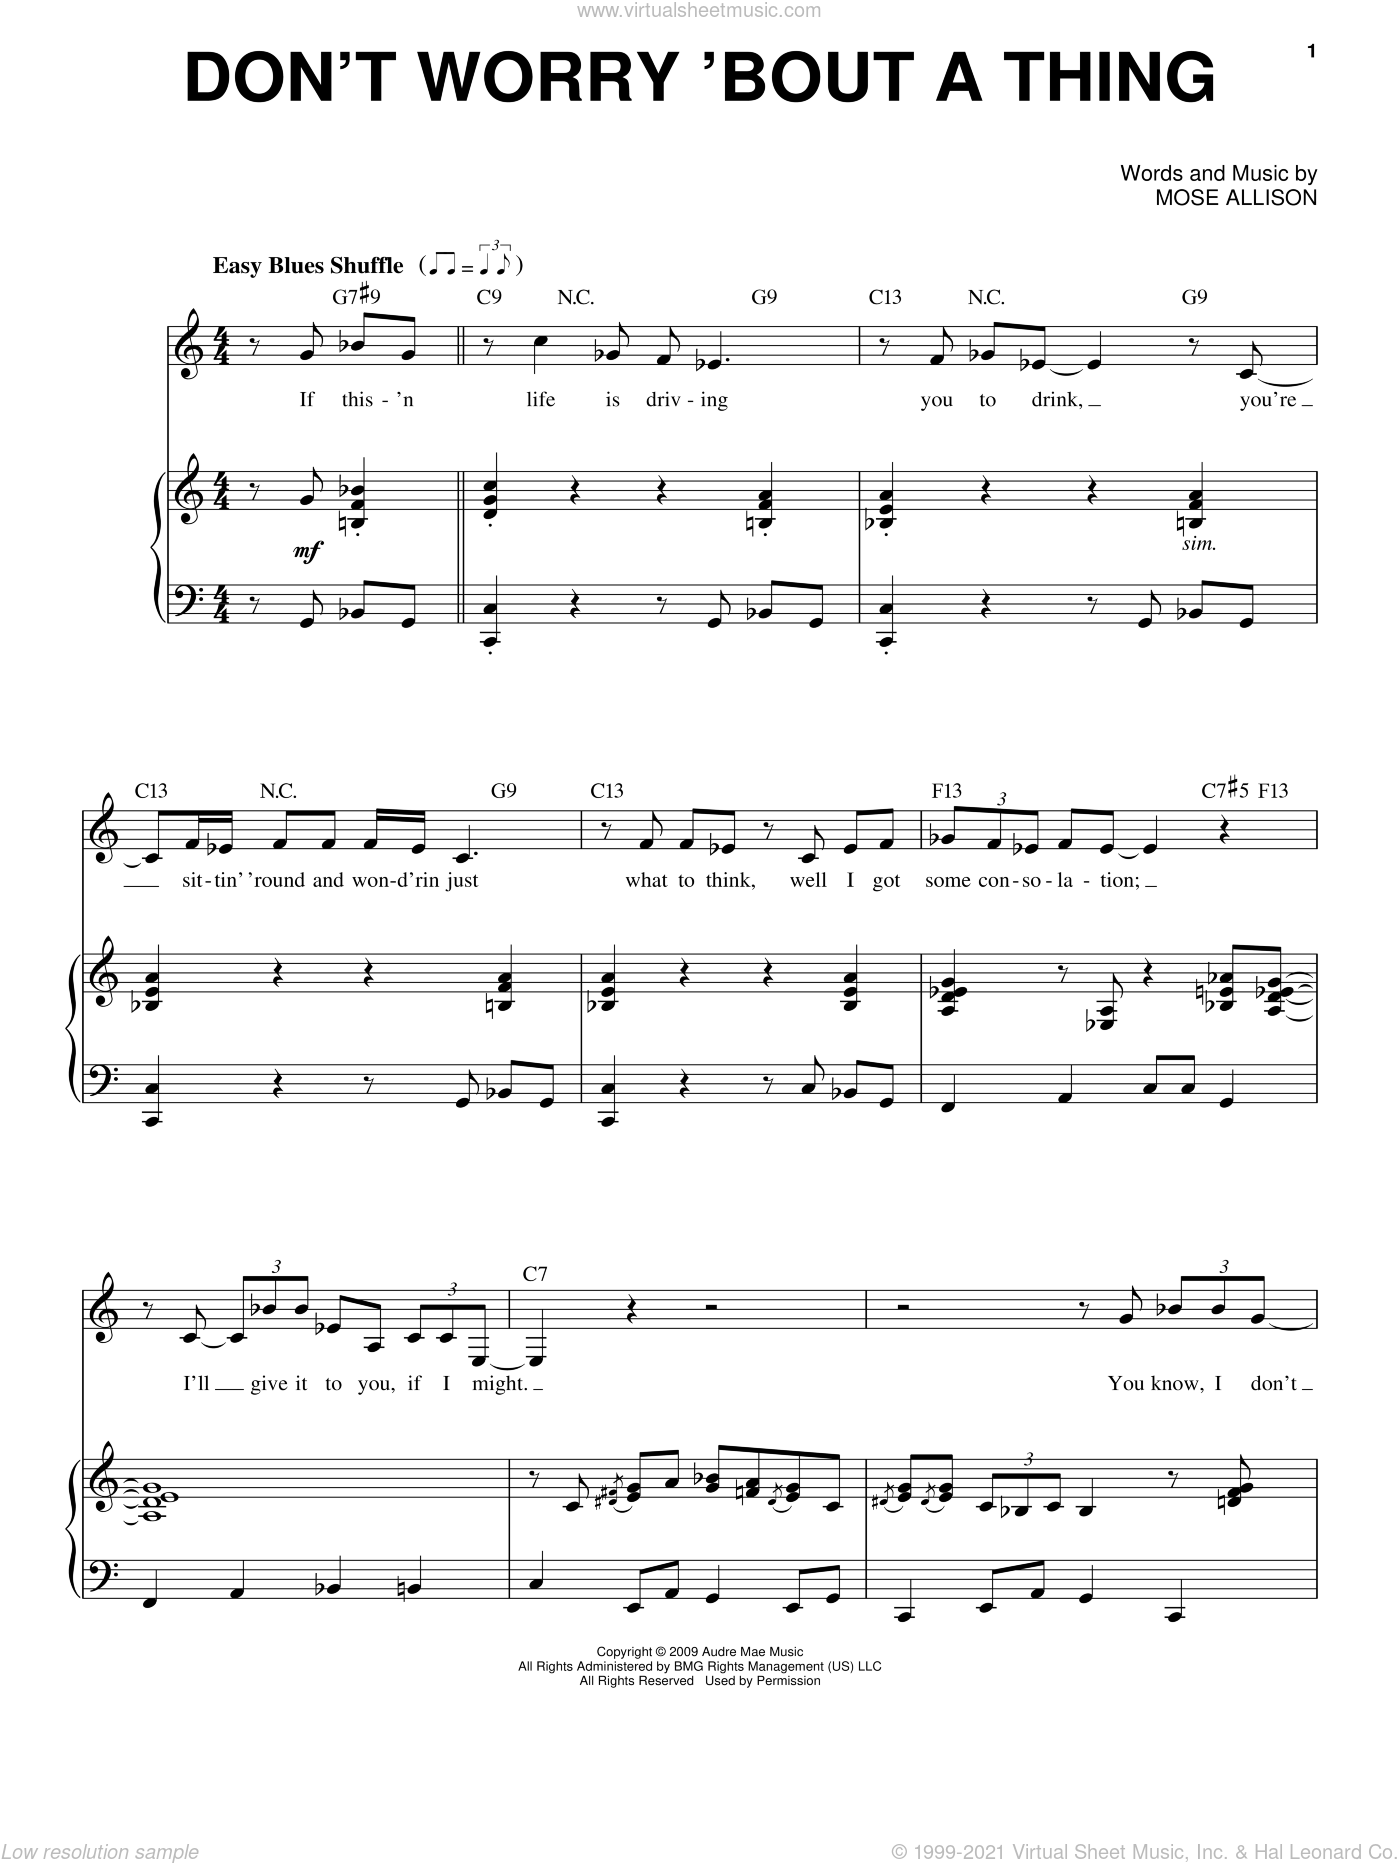 Don't Worry About A Thing sheet music for voice and piano by Mose Allison. Score Image Preview.